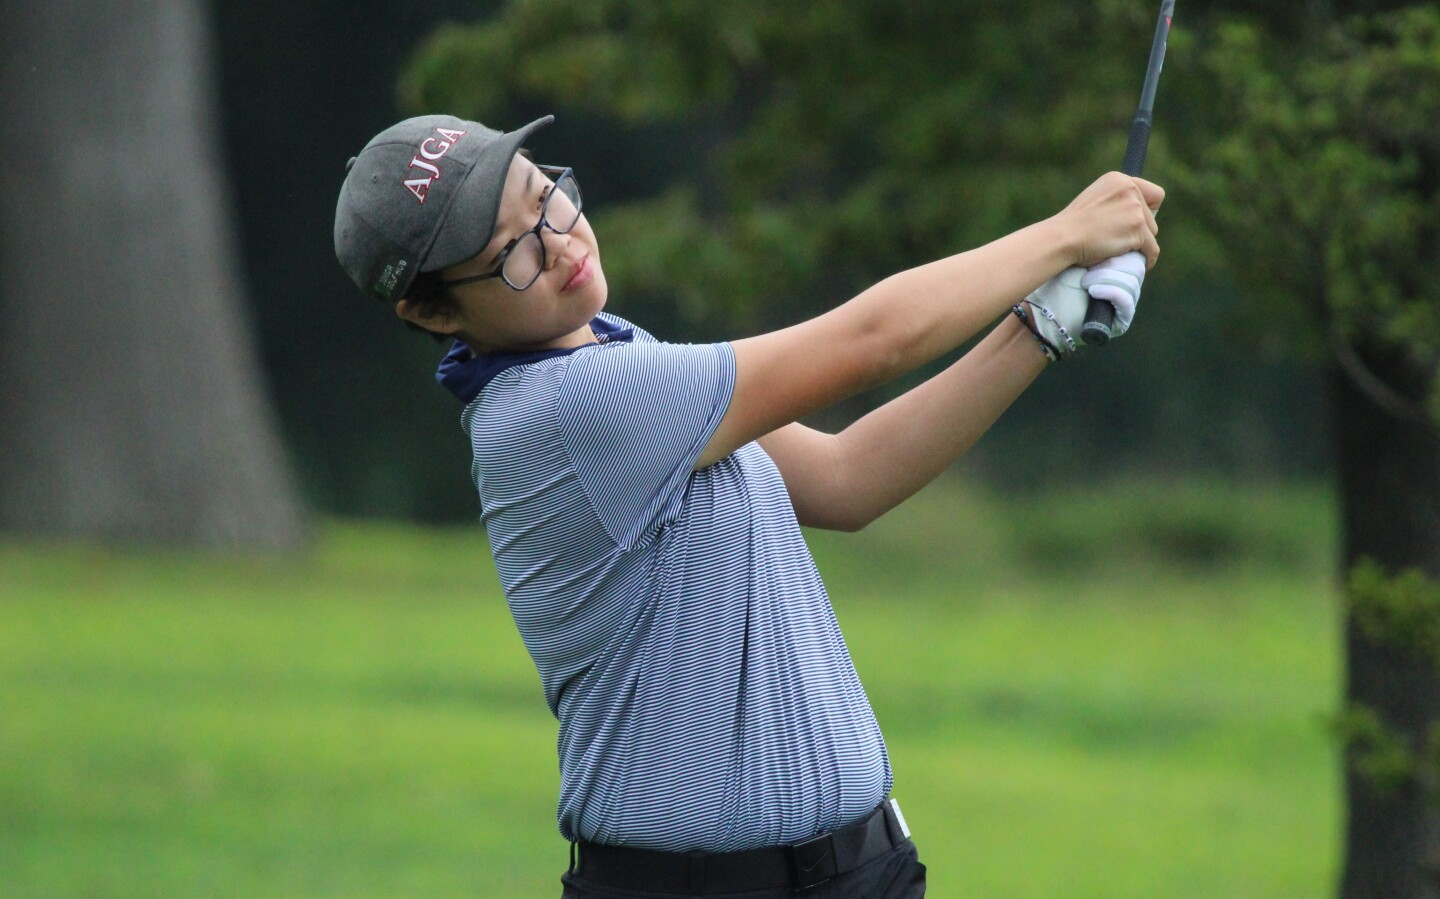 Hannah Hankim-2019-UHY The First Tee of Greater Baltimore Junior Championship.JPG